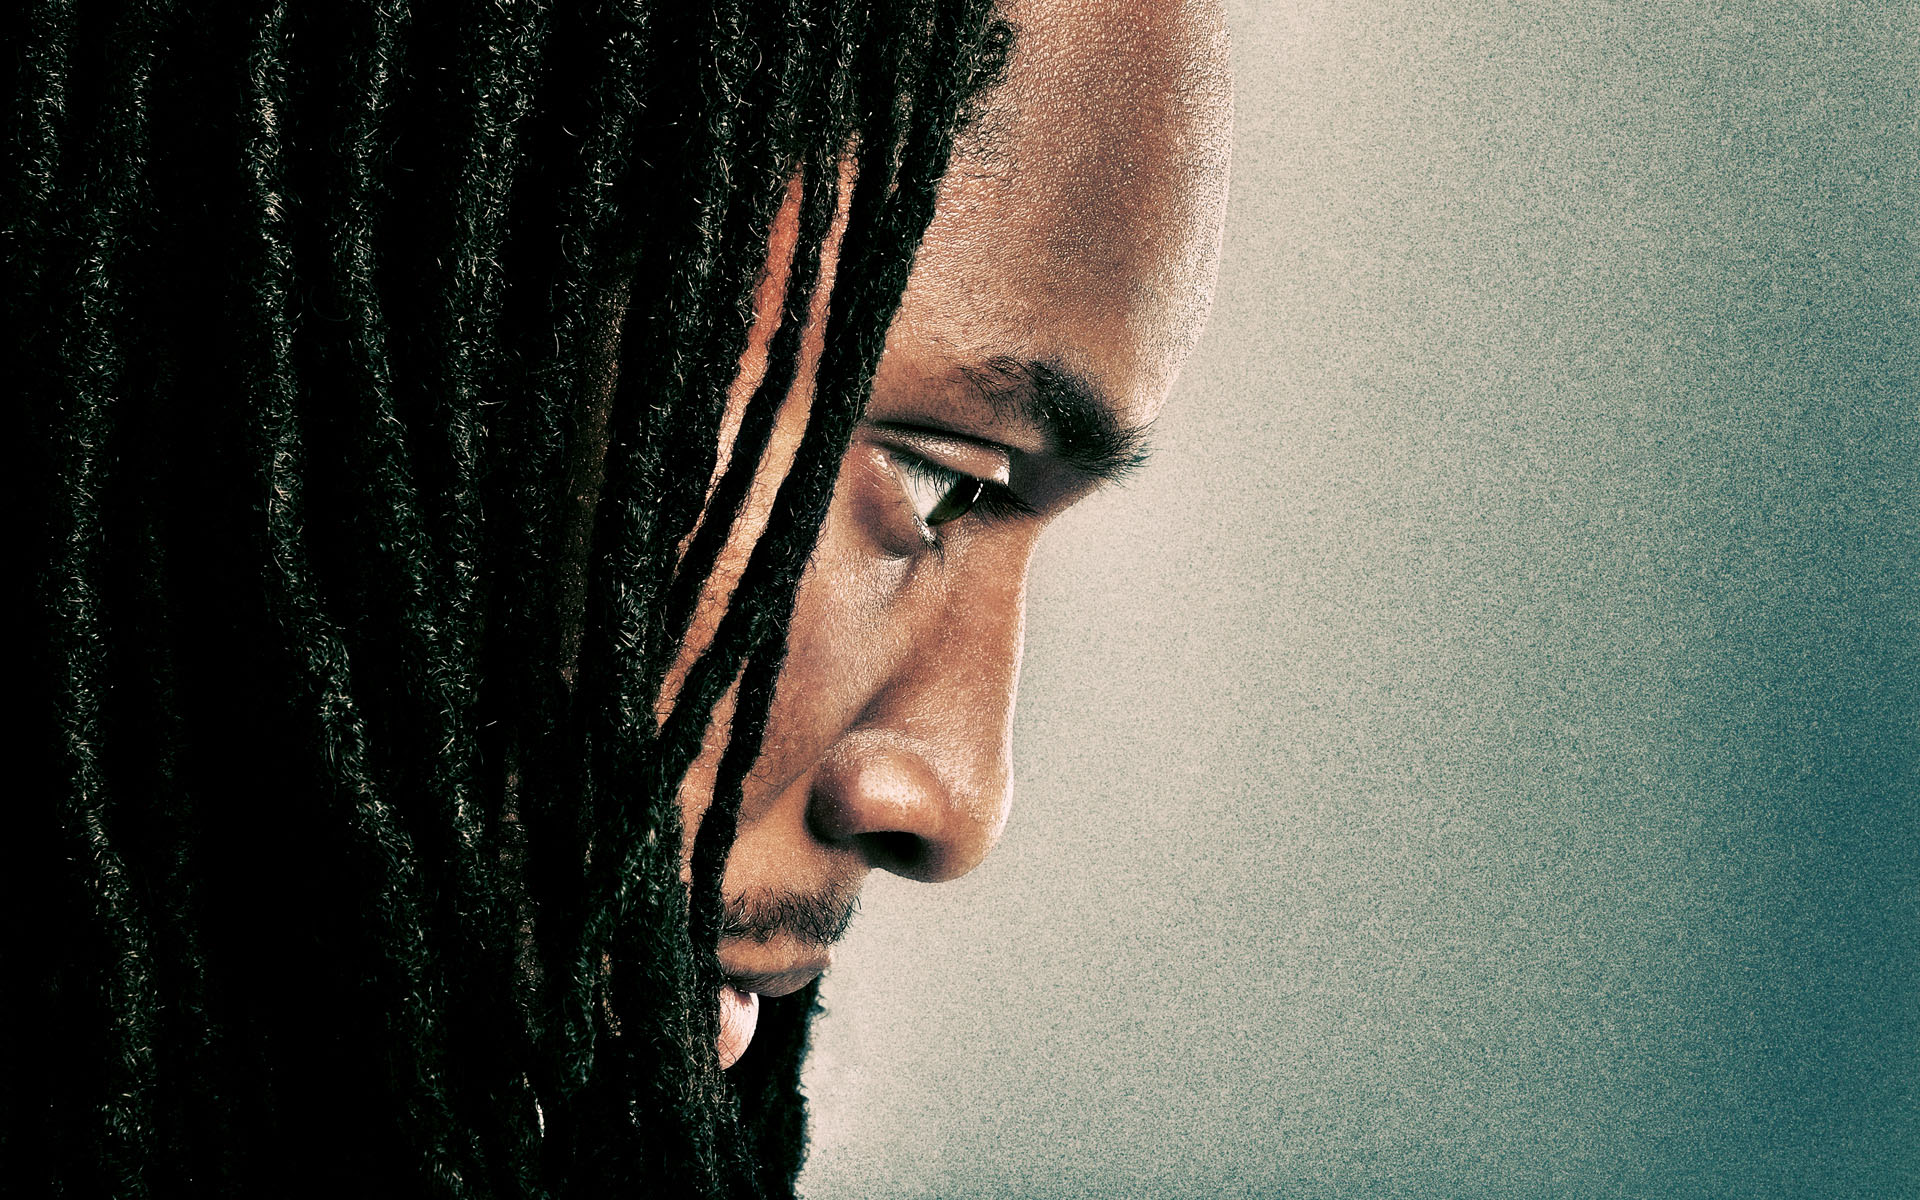 Larry Fitzgerald Portrait photograph by Blair Bunting